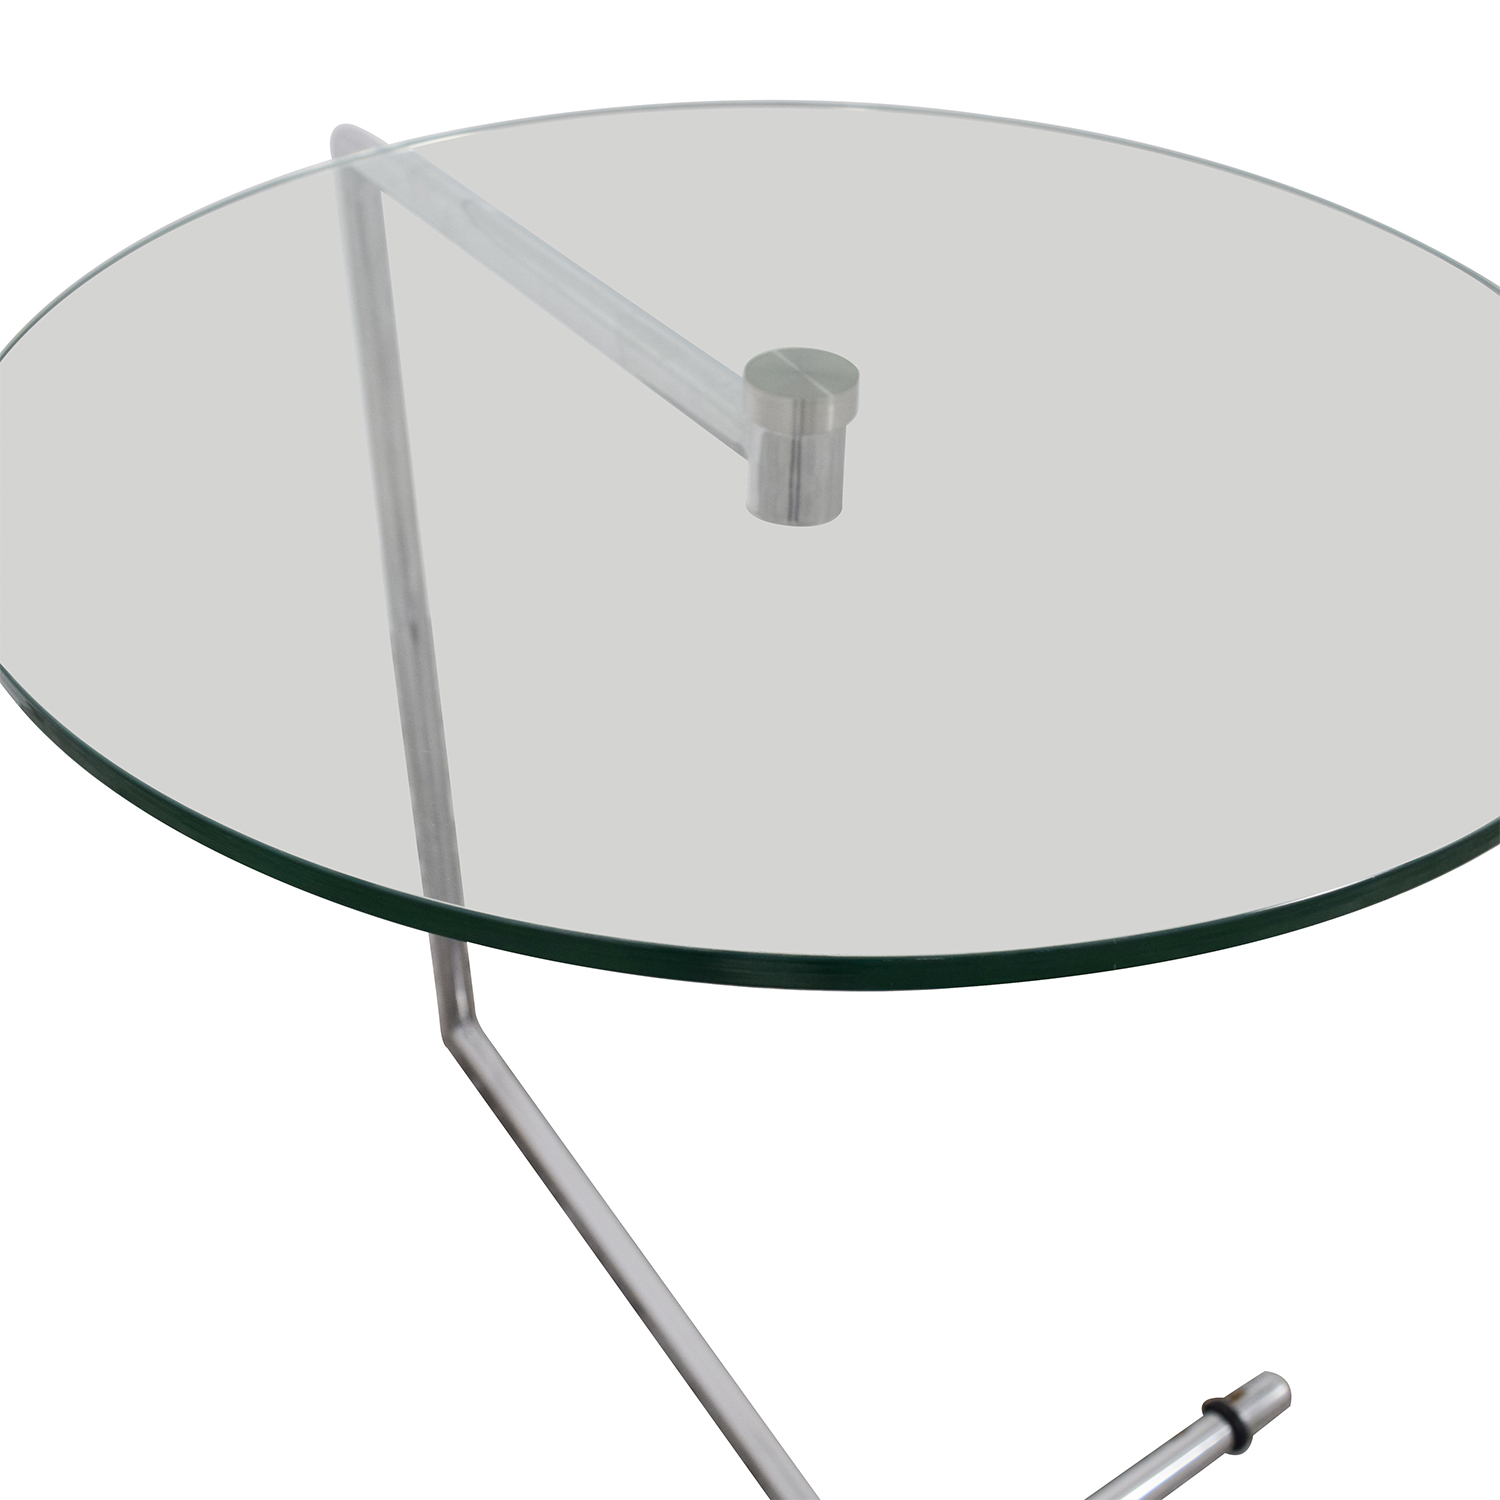 OFF Z Gallerie Z Gallerie Glass and Metal Side Table Tables